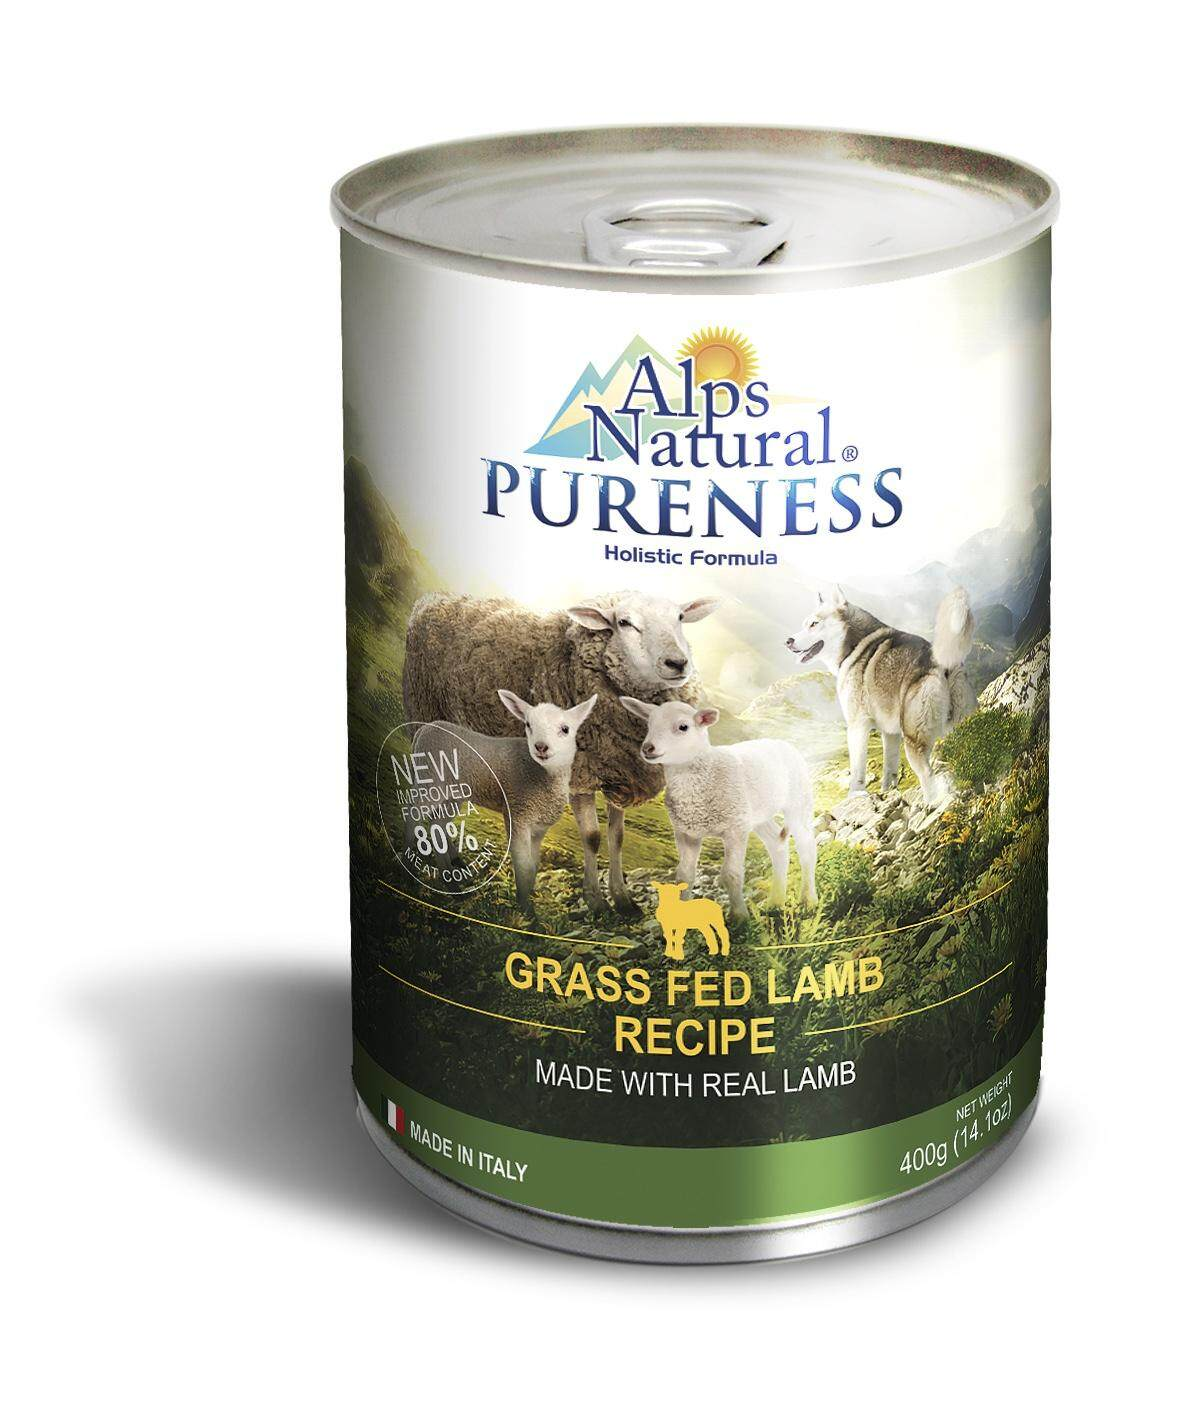 Alps Classic Lamb Can 400g / Alps Natural Pureness Grass Fed Lamb 400g